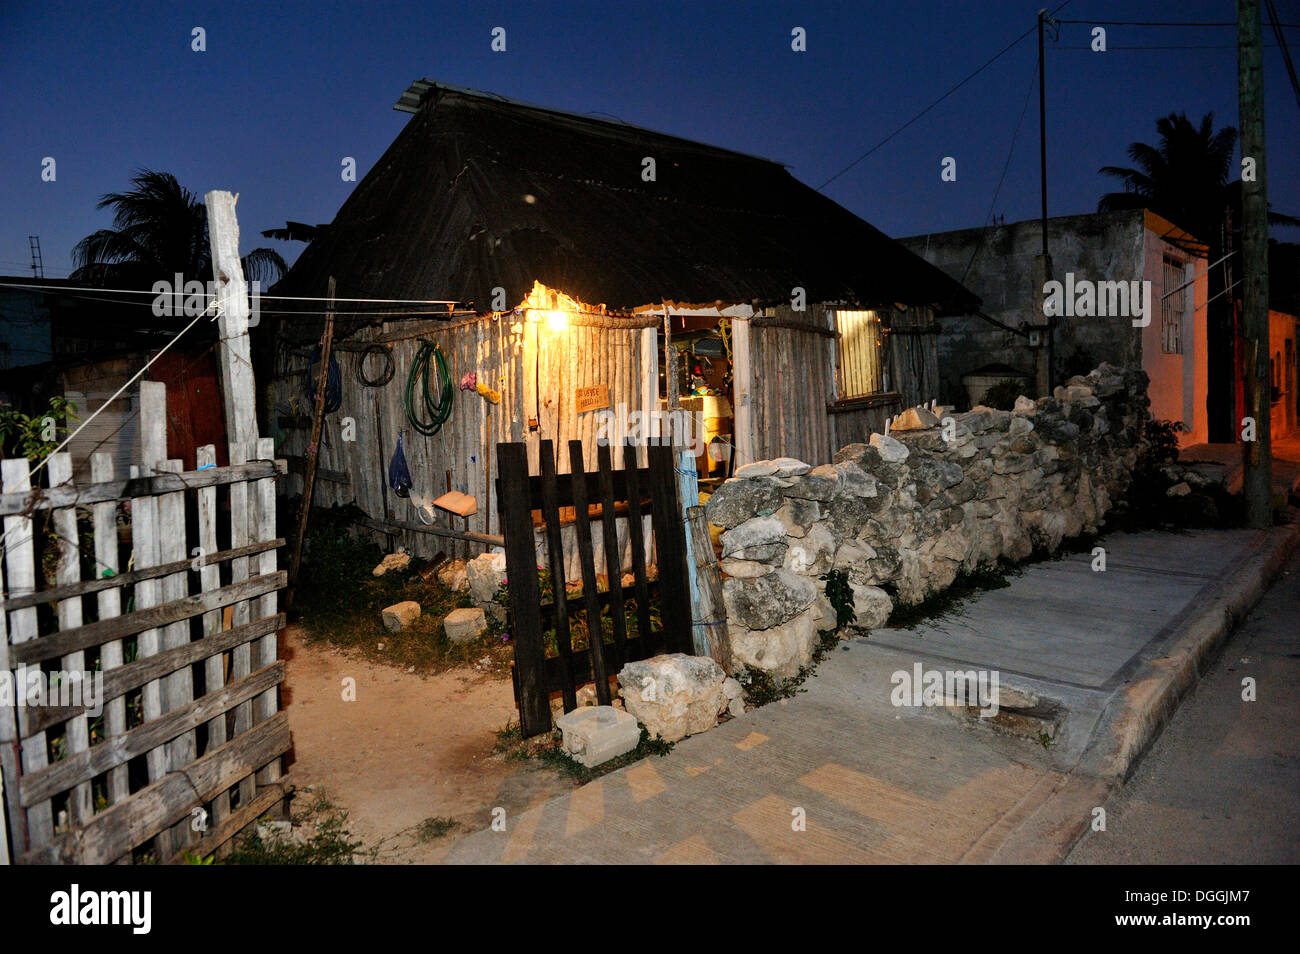 Humble cottage on the outskirts of Cancun owned by people working in the tourism industry, Cancun, Yucatan Peninsula - Stock Image